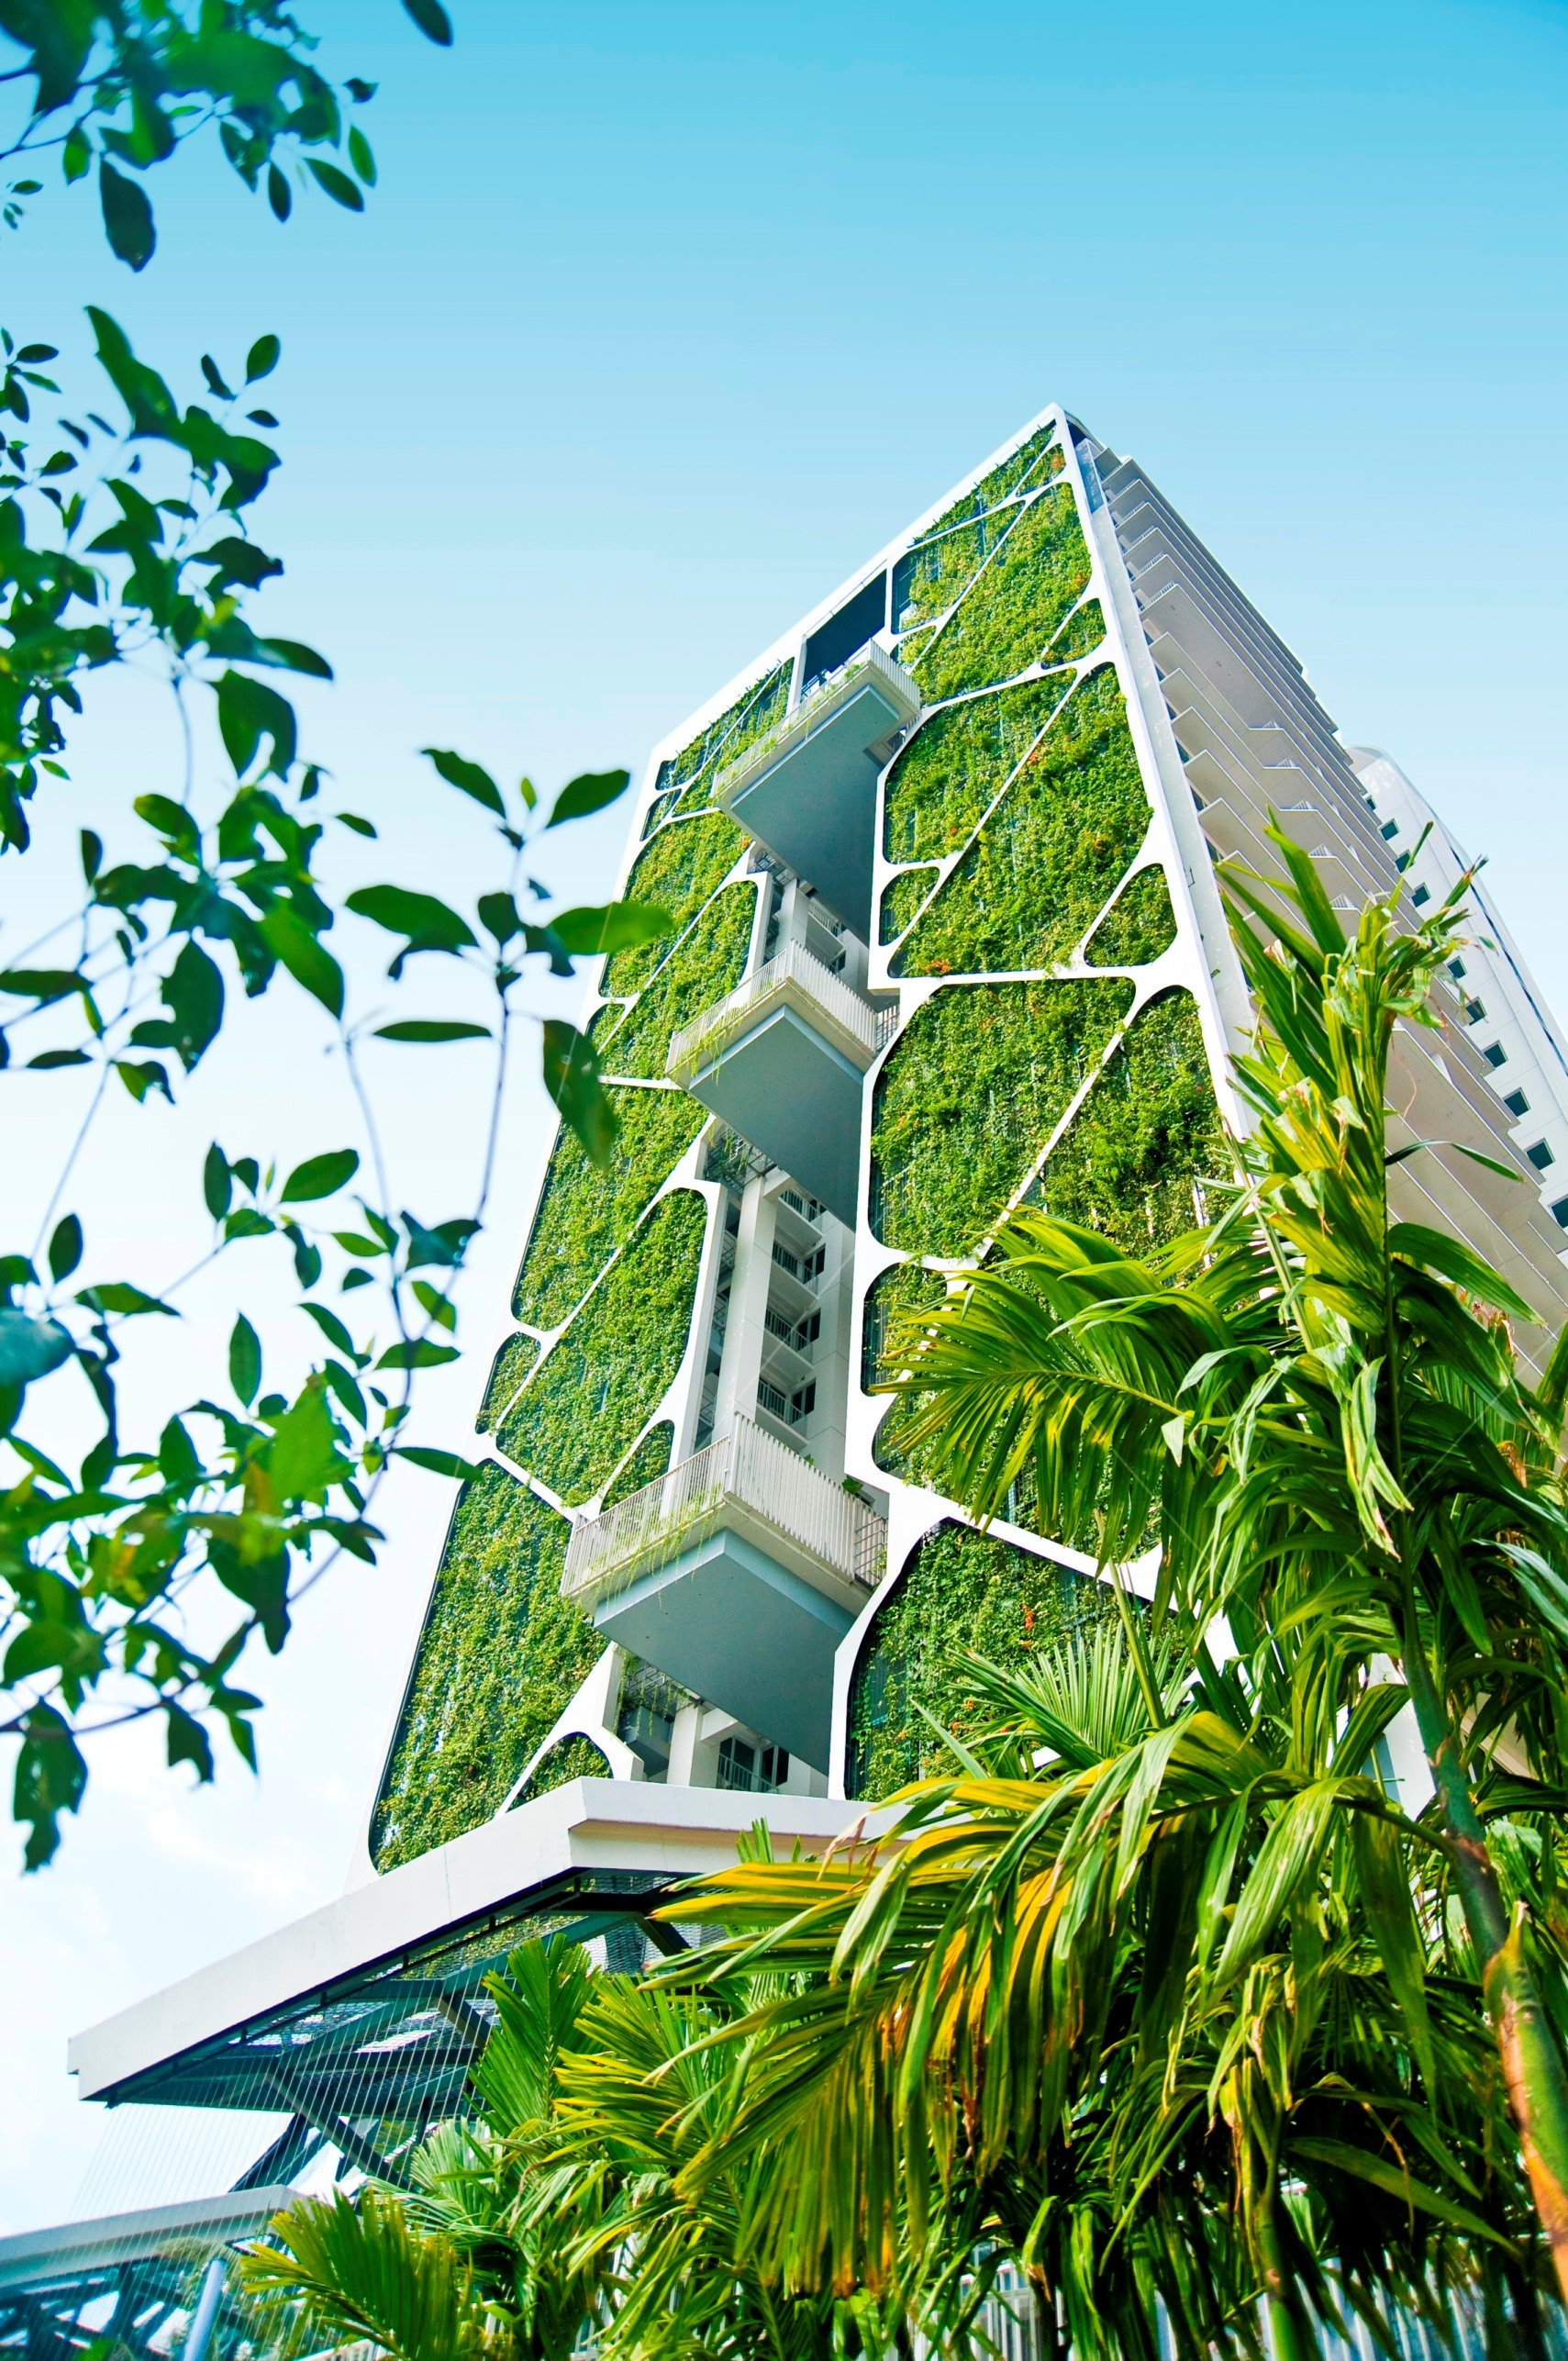 As Ever Growing Carbon Emissions Become A Bigger Worldwide Problem Our Citys Buildings Are Being Transformed To Be Able Protect Themselves